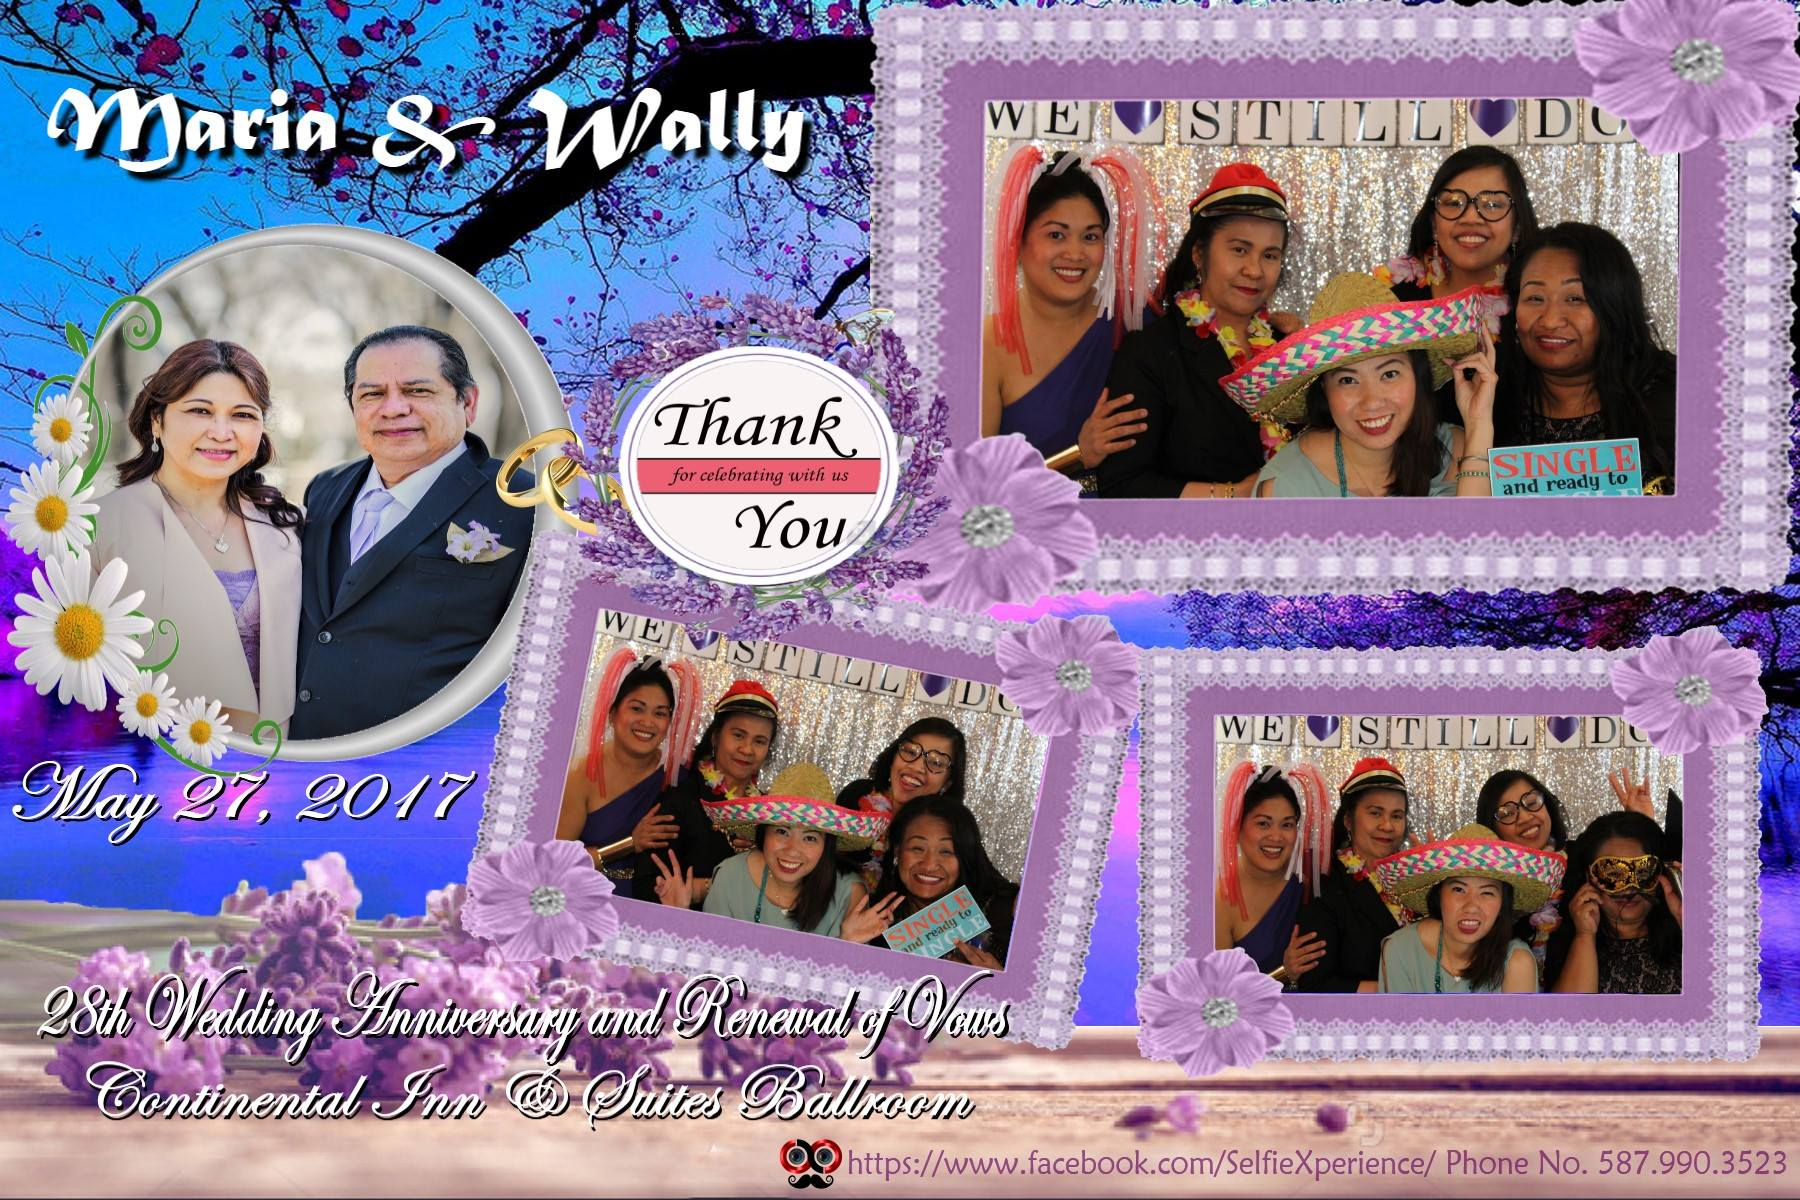 Maria & Wally Wedding